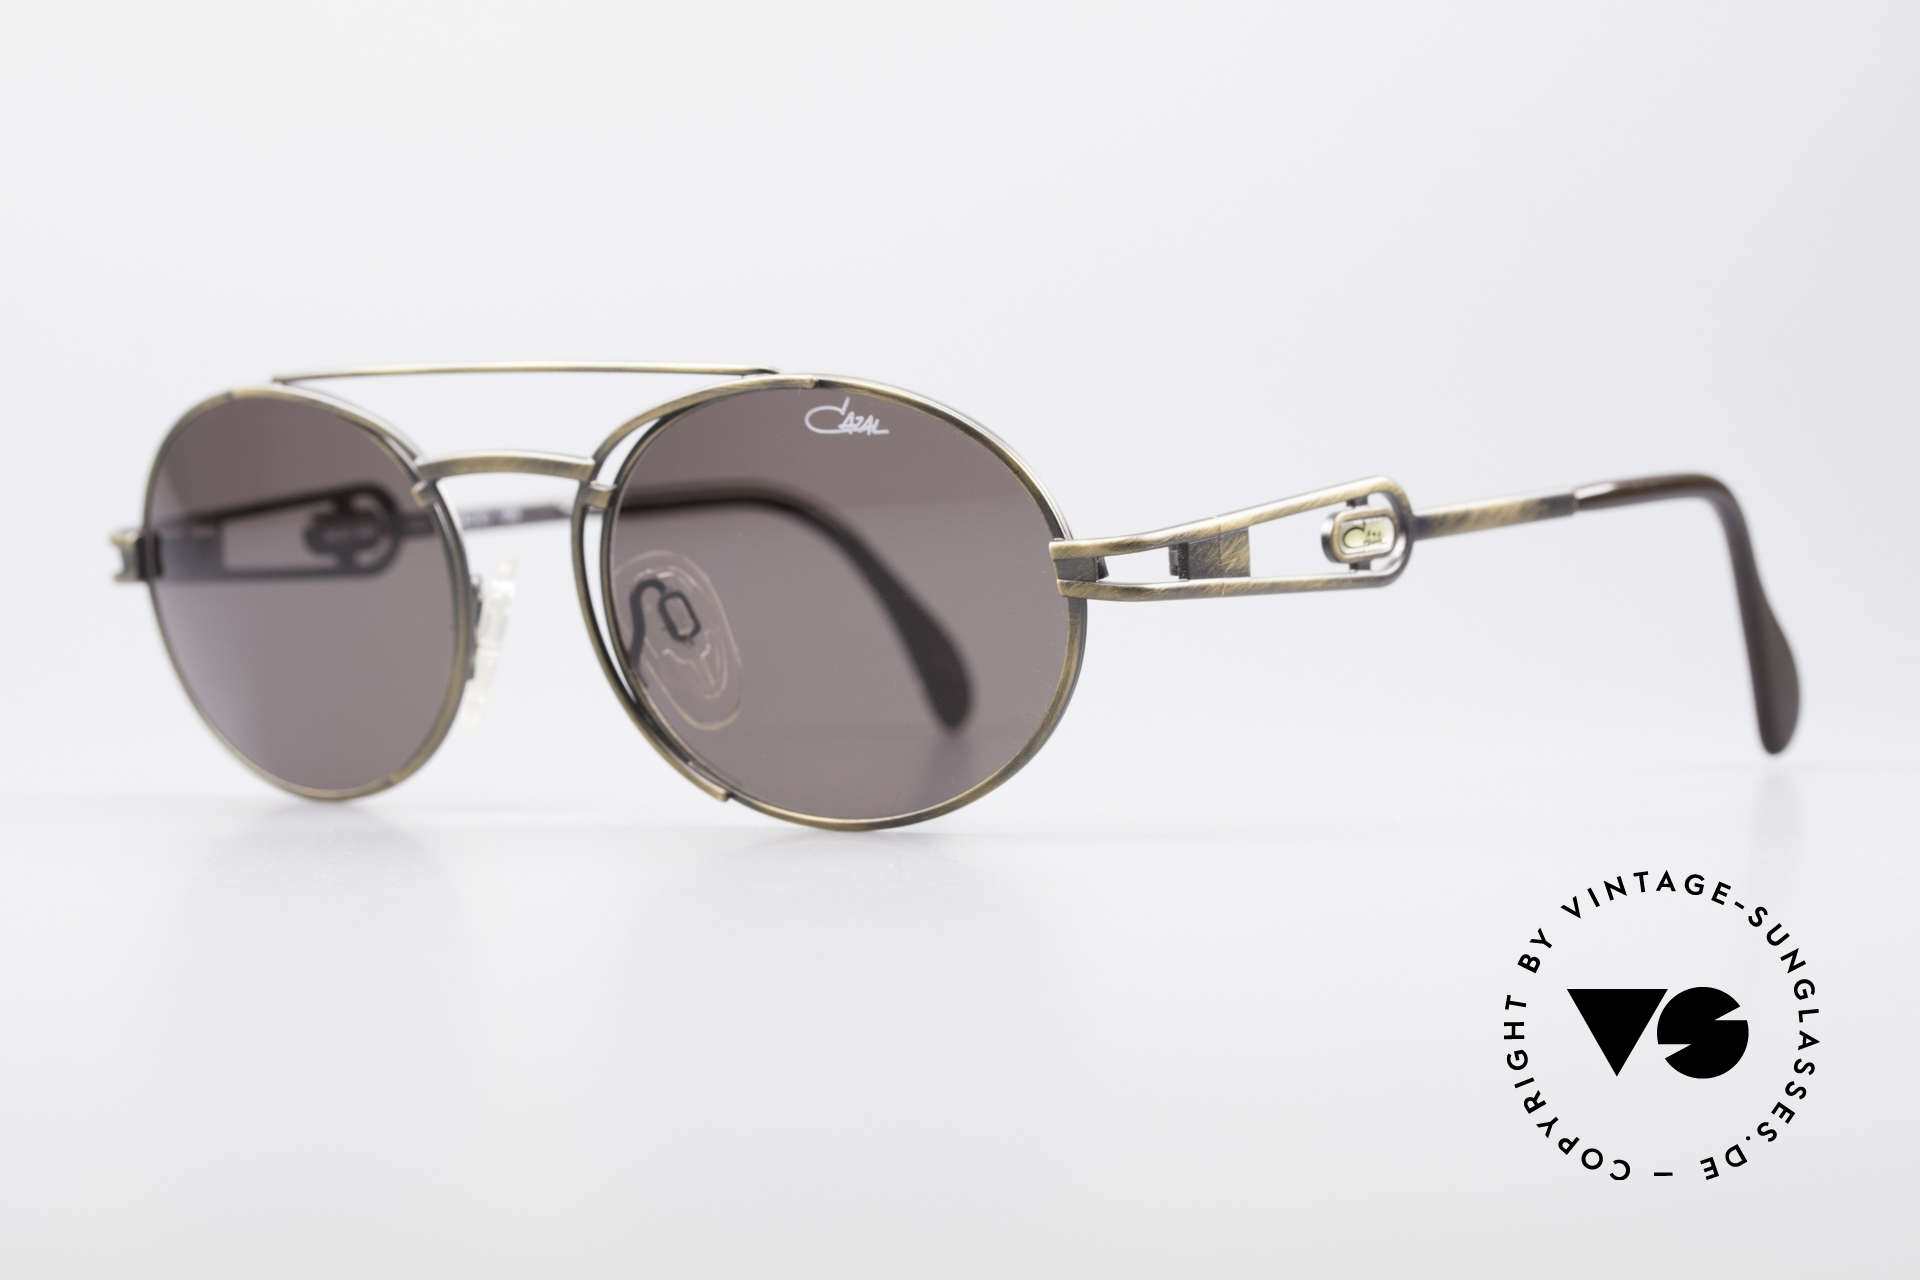 Cazal 965 Oval Steampunk Style Shades, outstanding quality (You must feel it!); - monolithic!, Made for Men and Women